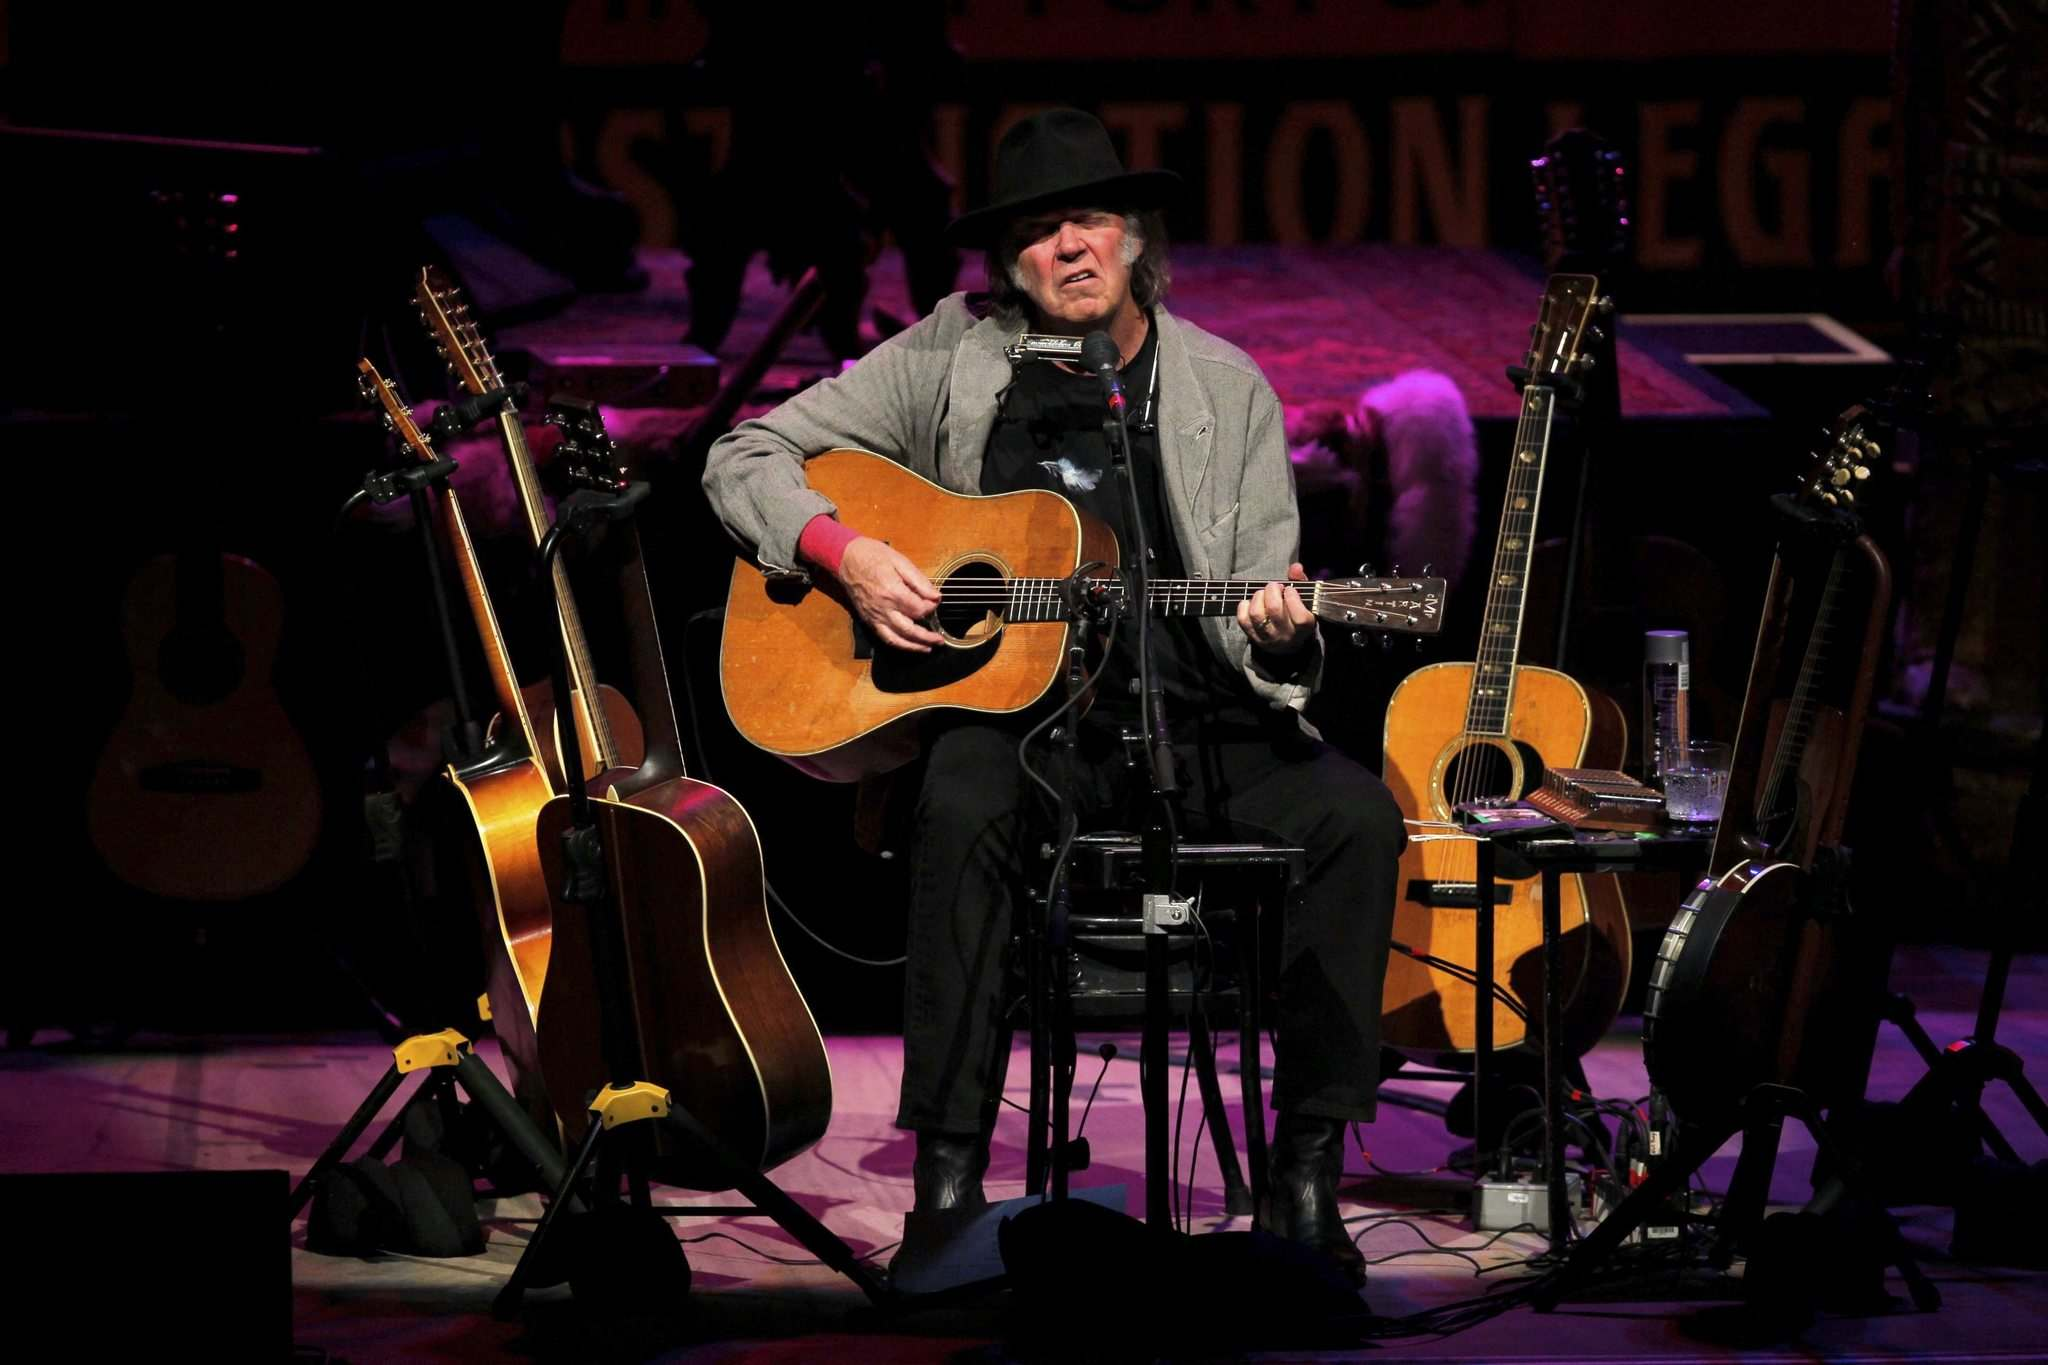 Young played a series of benefit concerts in 2014 to raise funds and awareness for First Nations groups in northern Alberta. (Boris Minkevich / Winnipeg Free Press files)